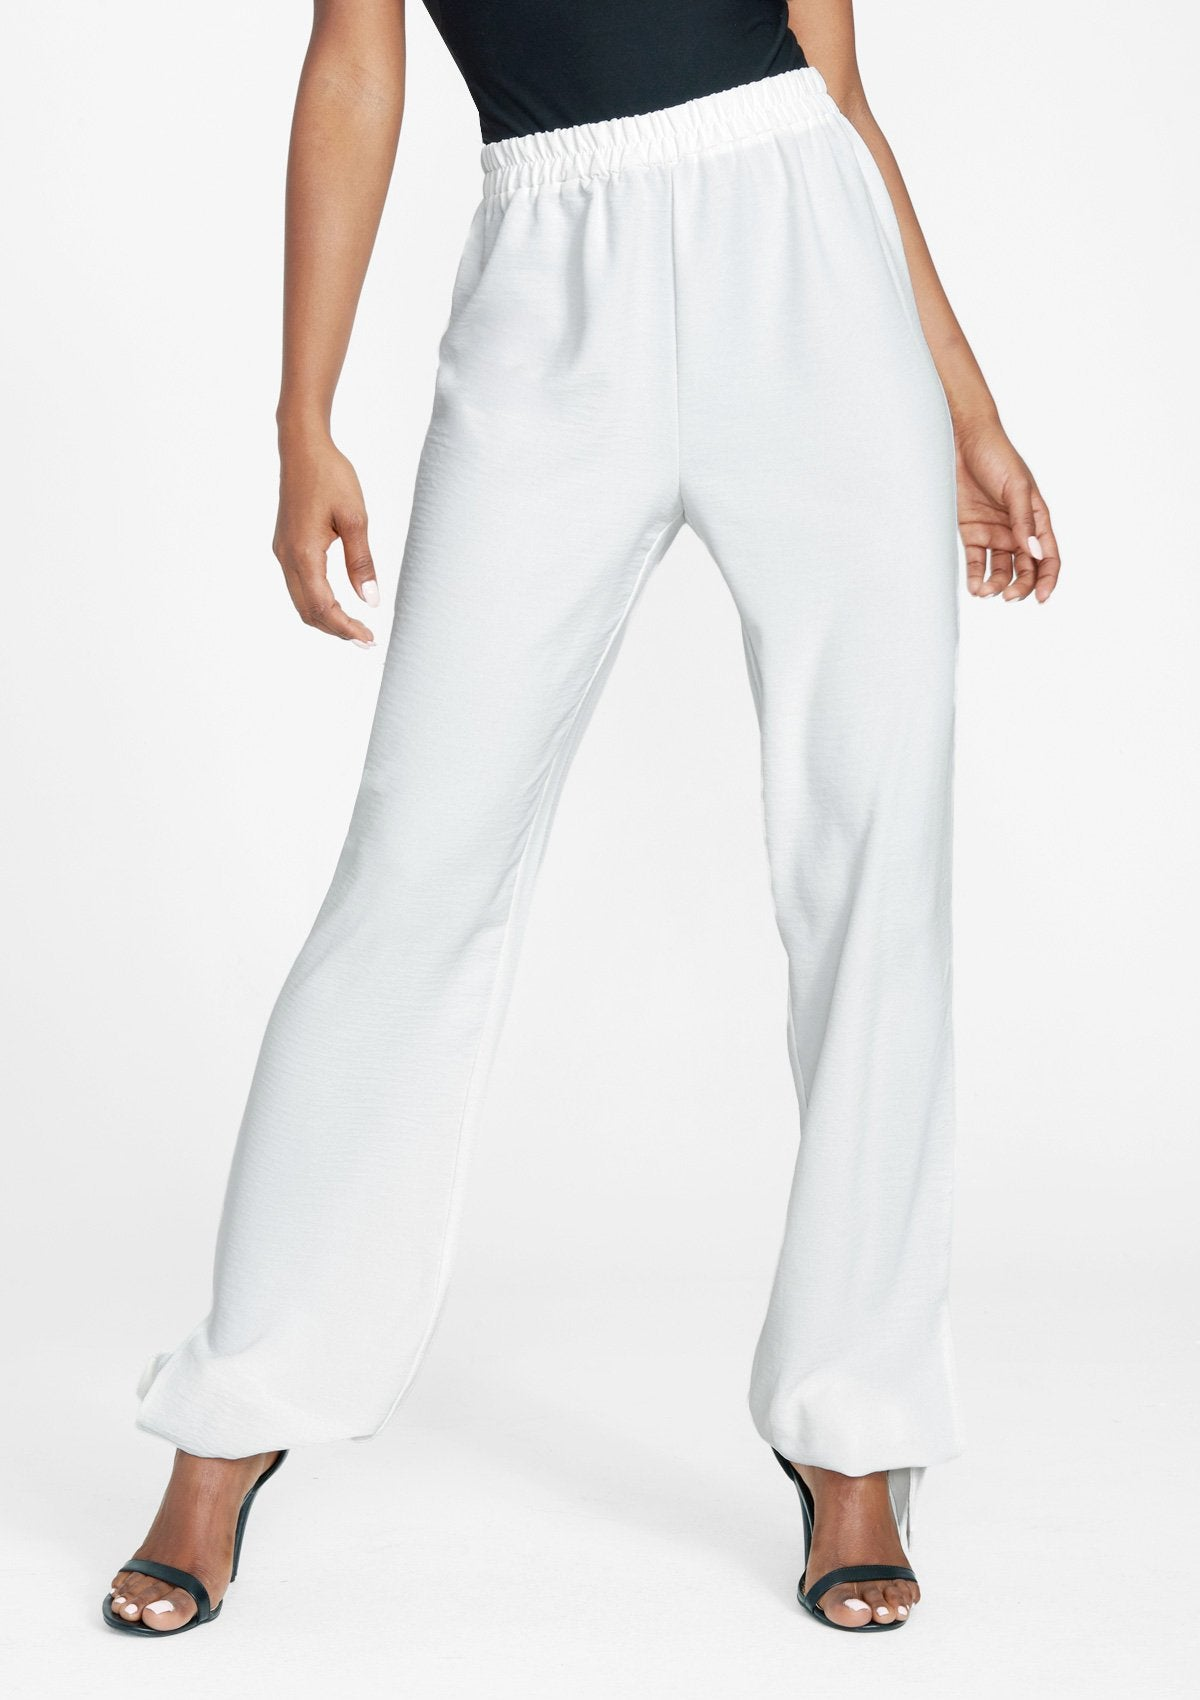 Alloy Apparel Tall Tie Leg Flowy Pants for Women in Off White Size M   Polyester